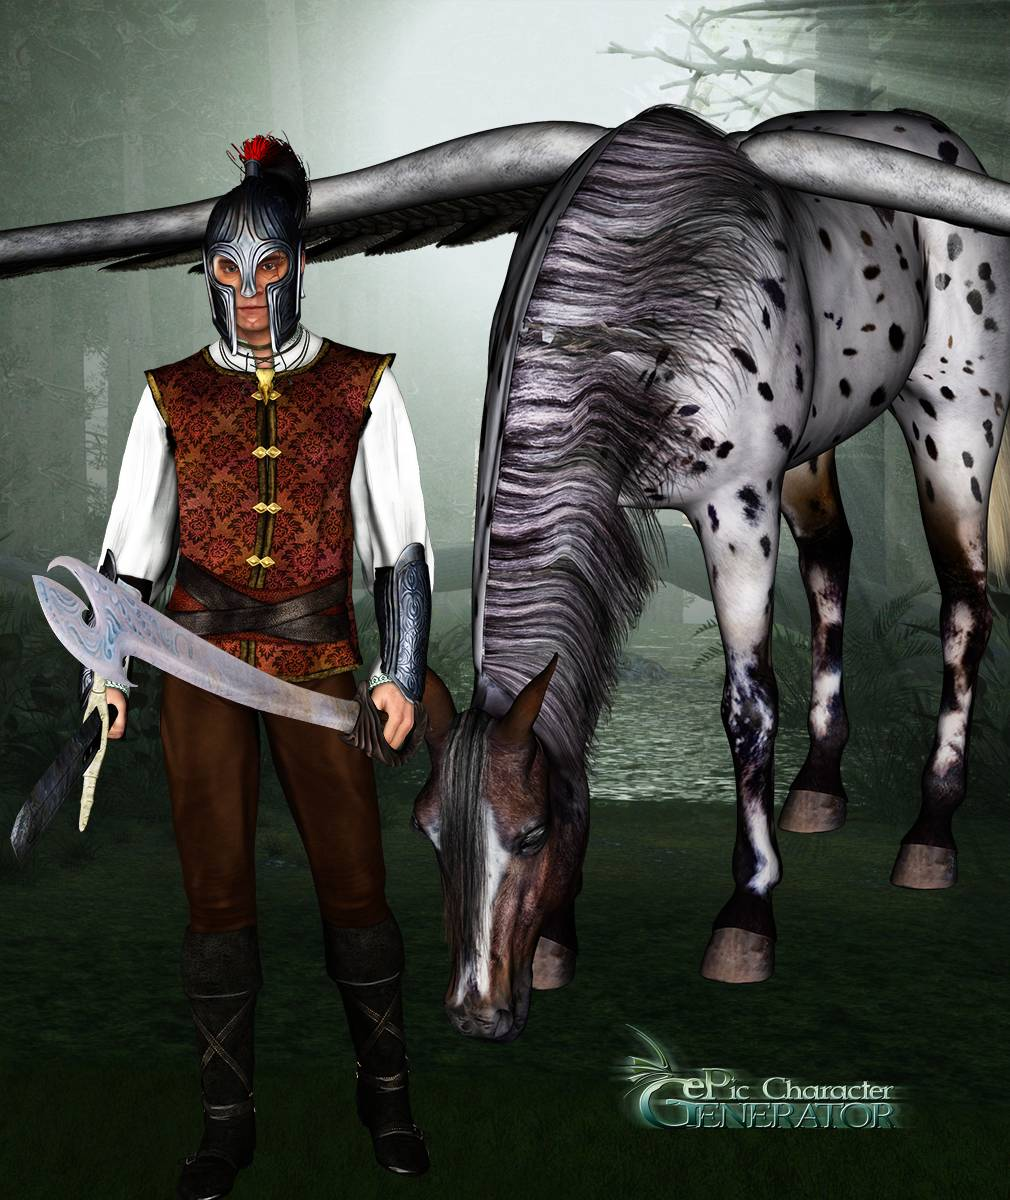 ePic Character Generator Season 2 Fantasy Bestiary Screenshot 03